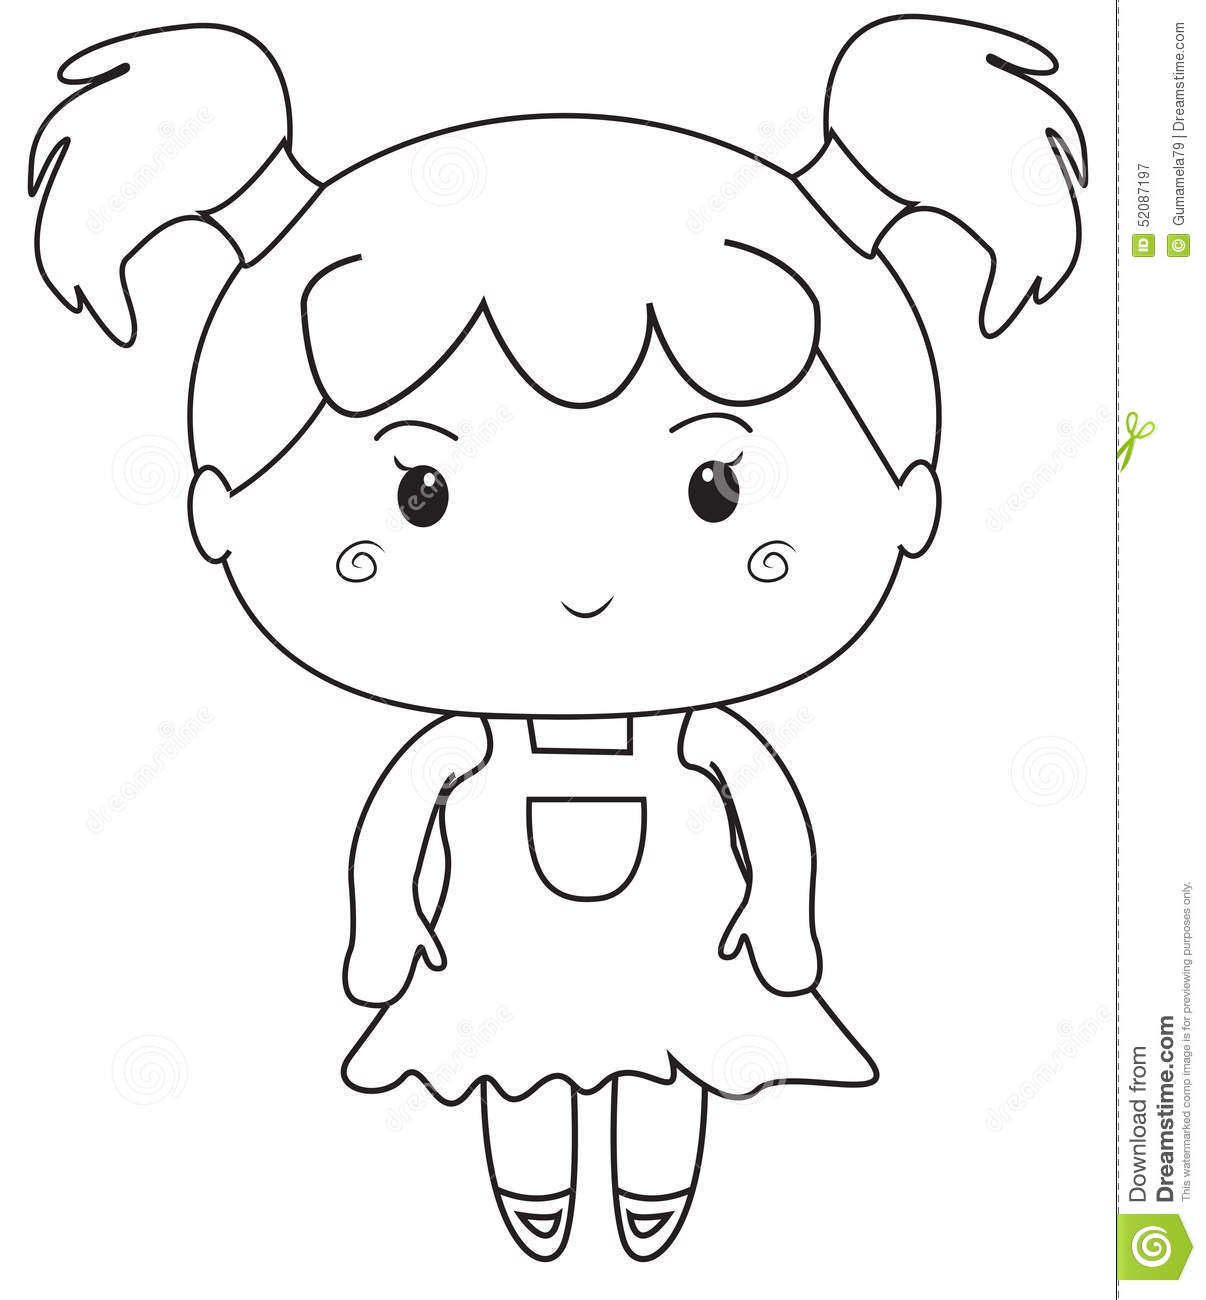 Little girl coloring page stock illustration. Illustration of ...